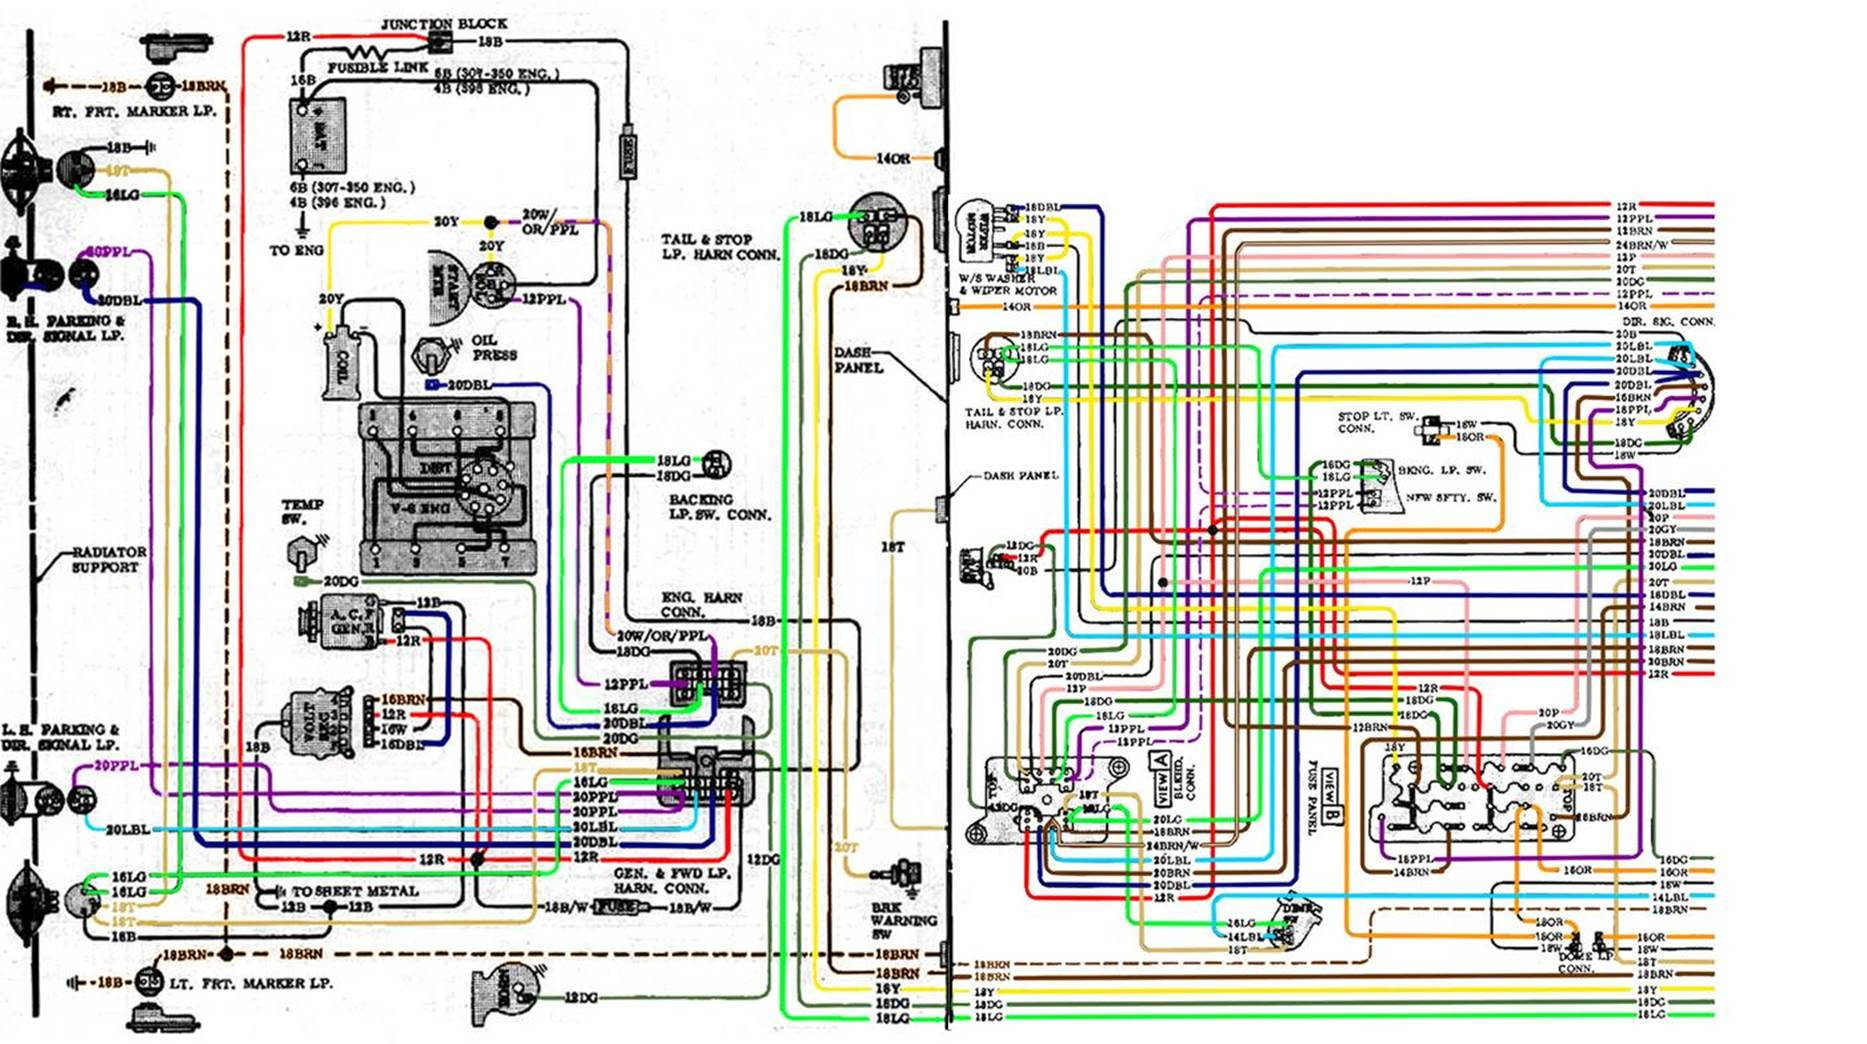 image002 78 chevy truck wiring diagram 86 chevy wiring diagram \u2022 free 1966 GTO Engine at edmiracle.co